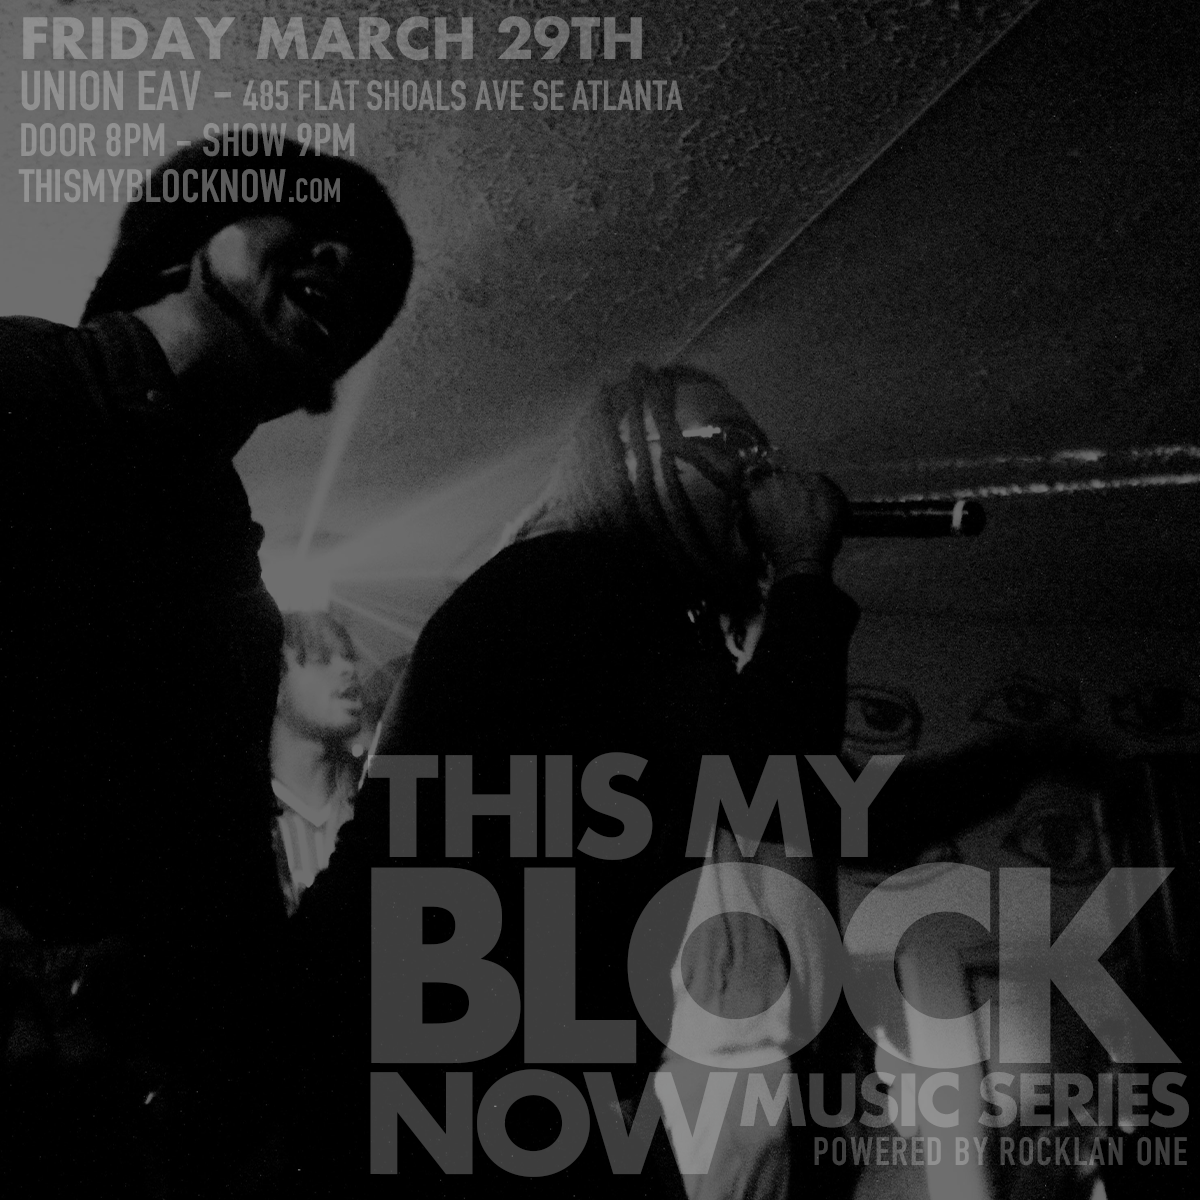 This My Block Now Music Series